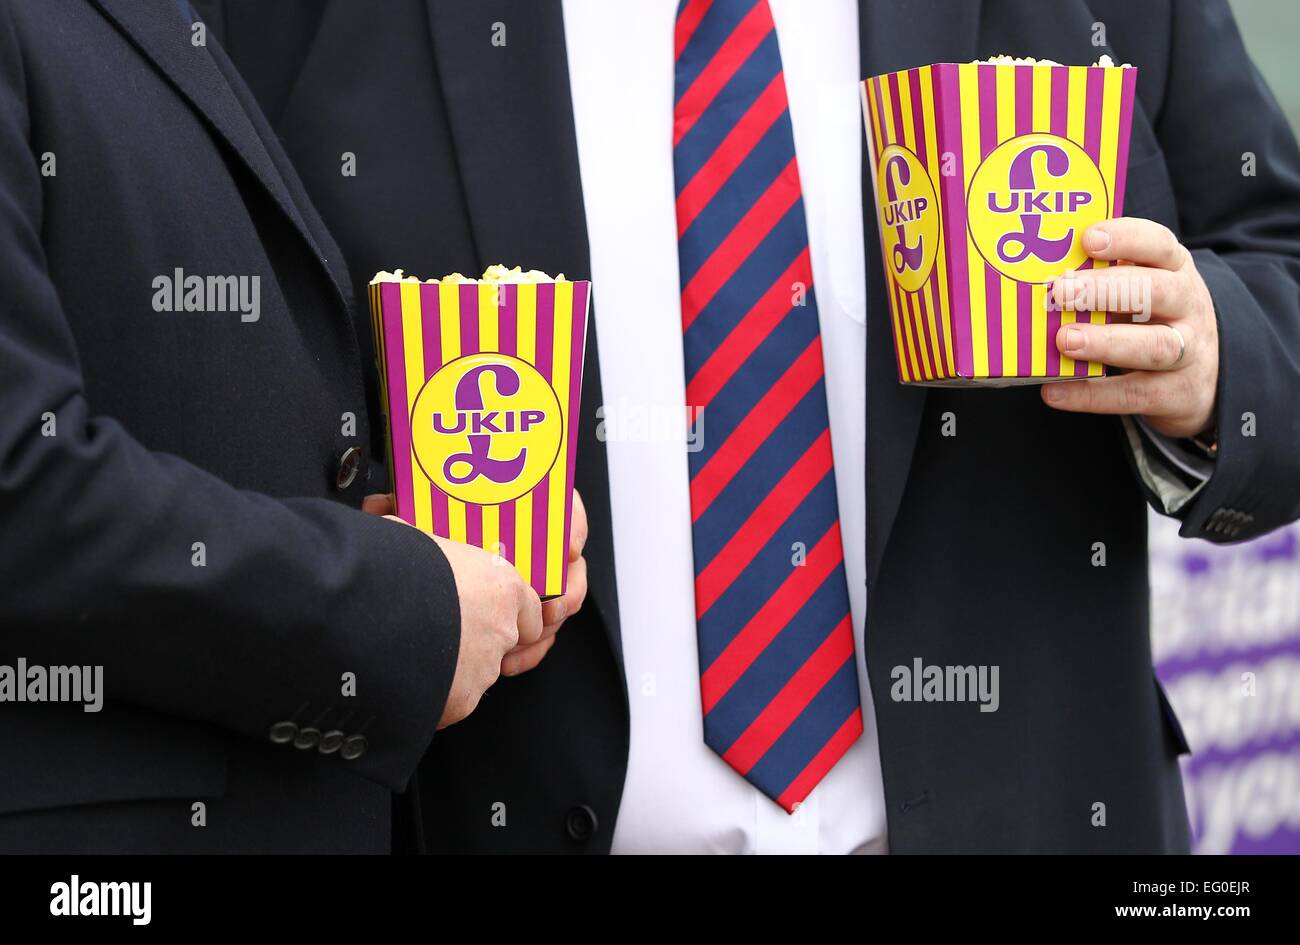 UK Independence Party members holding UKIP branded pop corn outside the Movie Starr Cinema in Canvery Island. - Stock Image